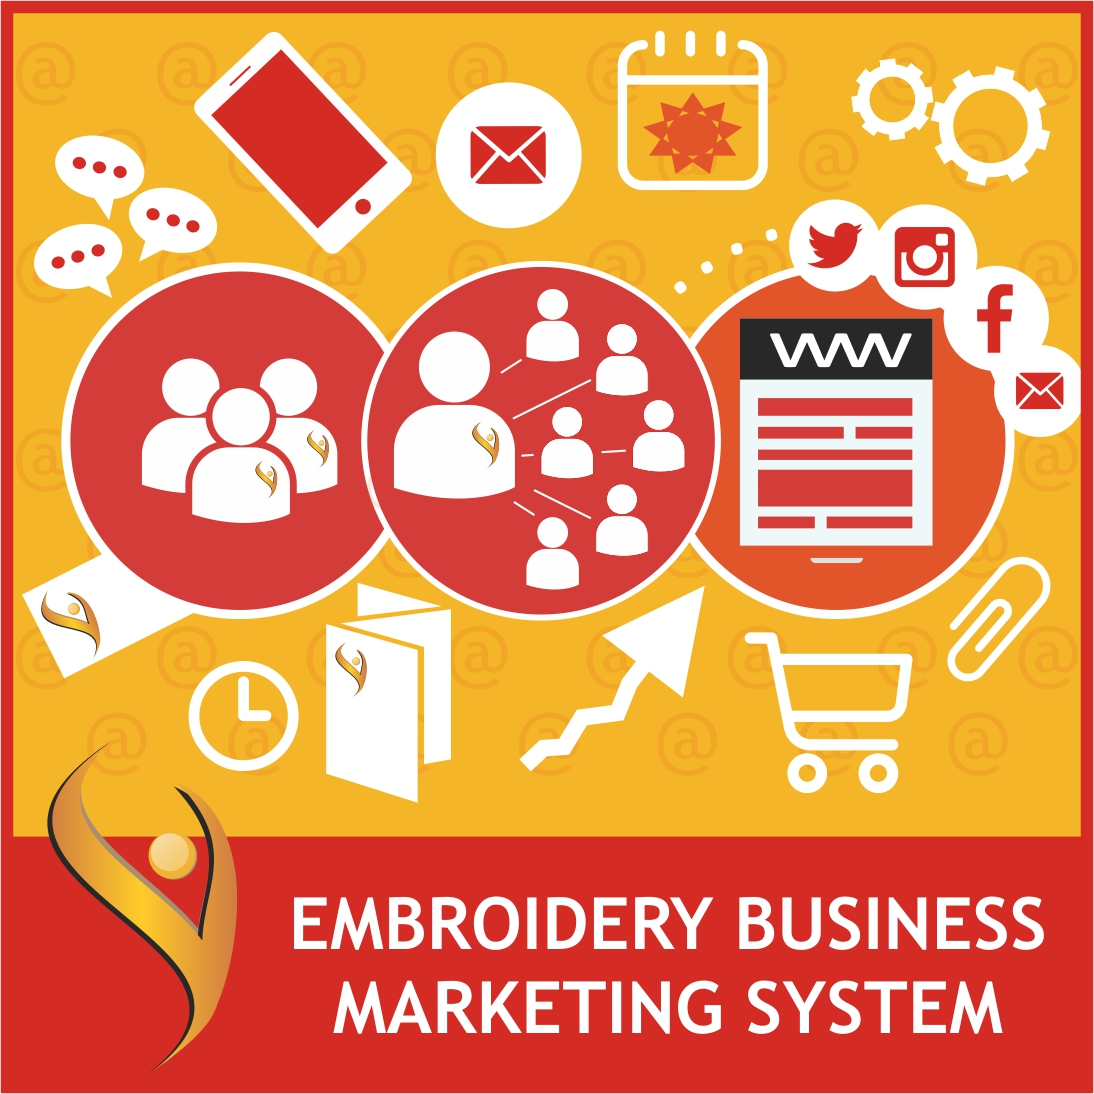 Embroidery Business Marketing System